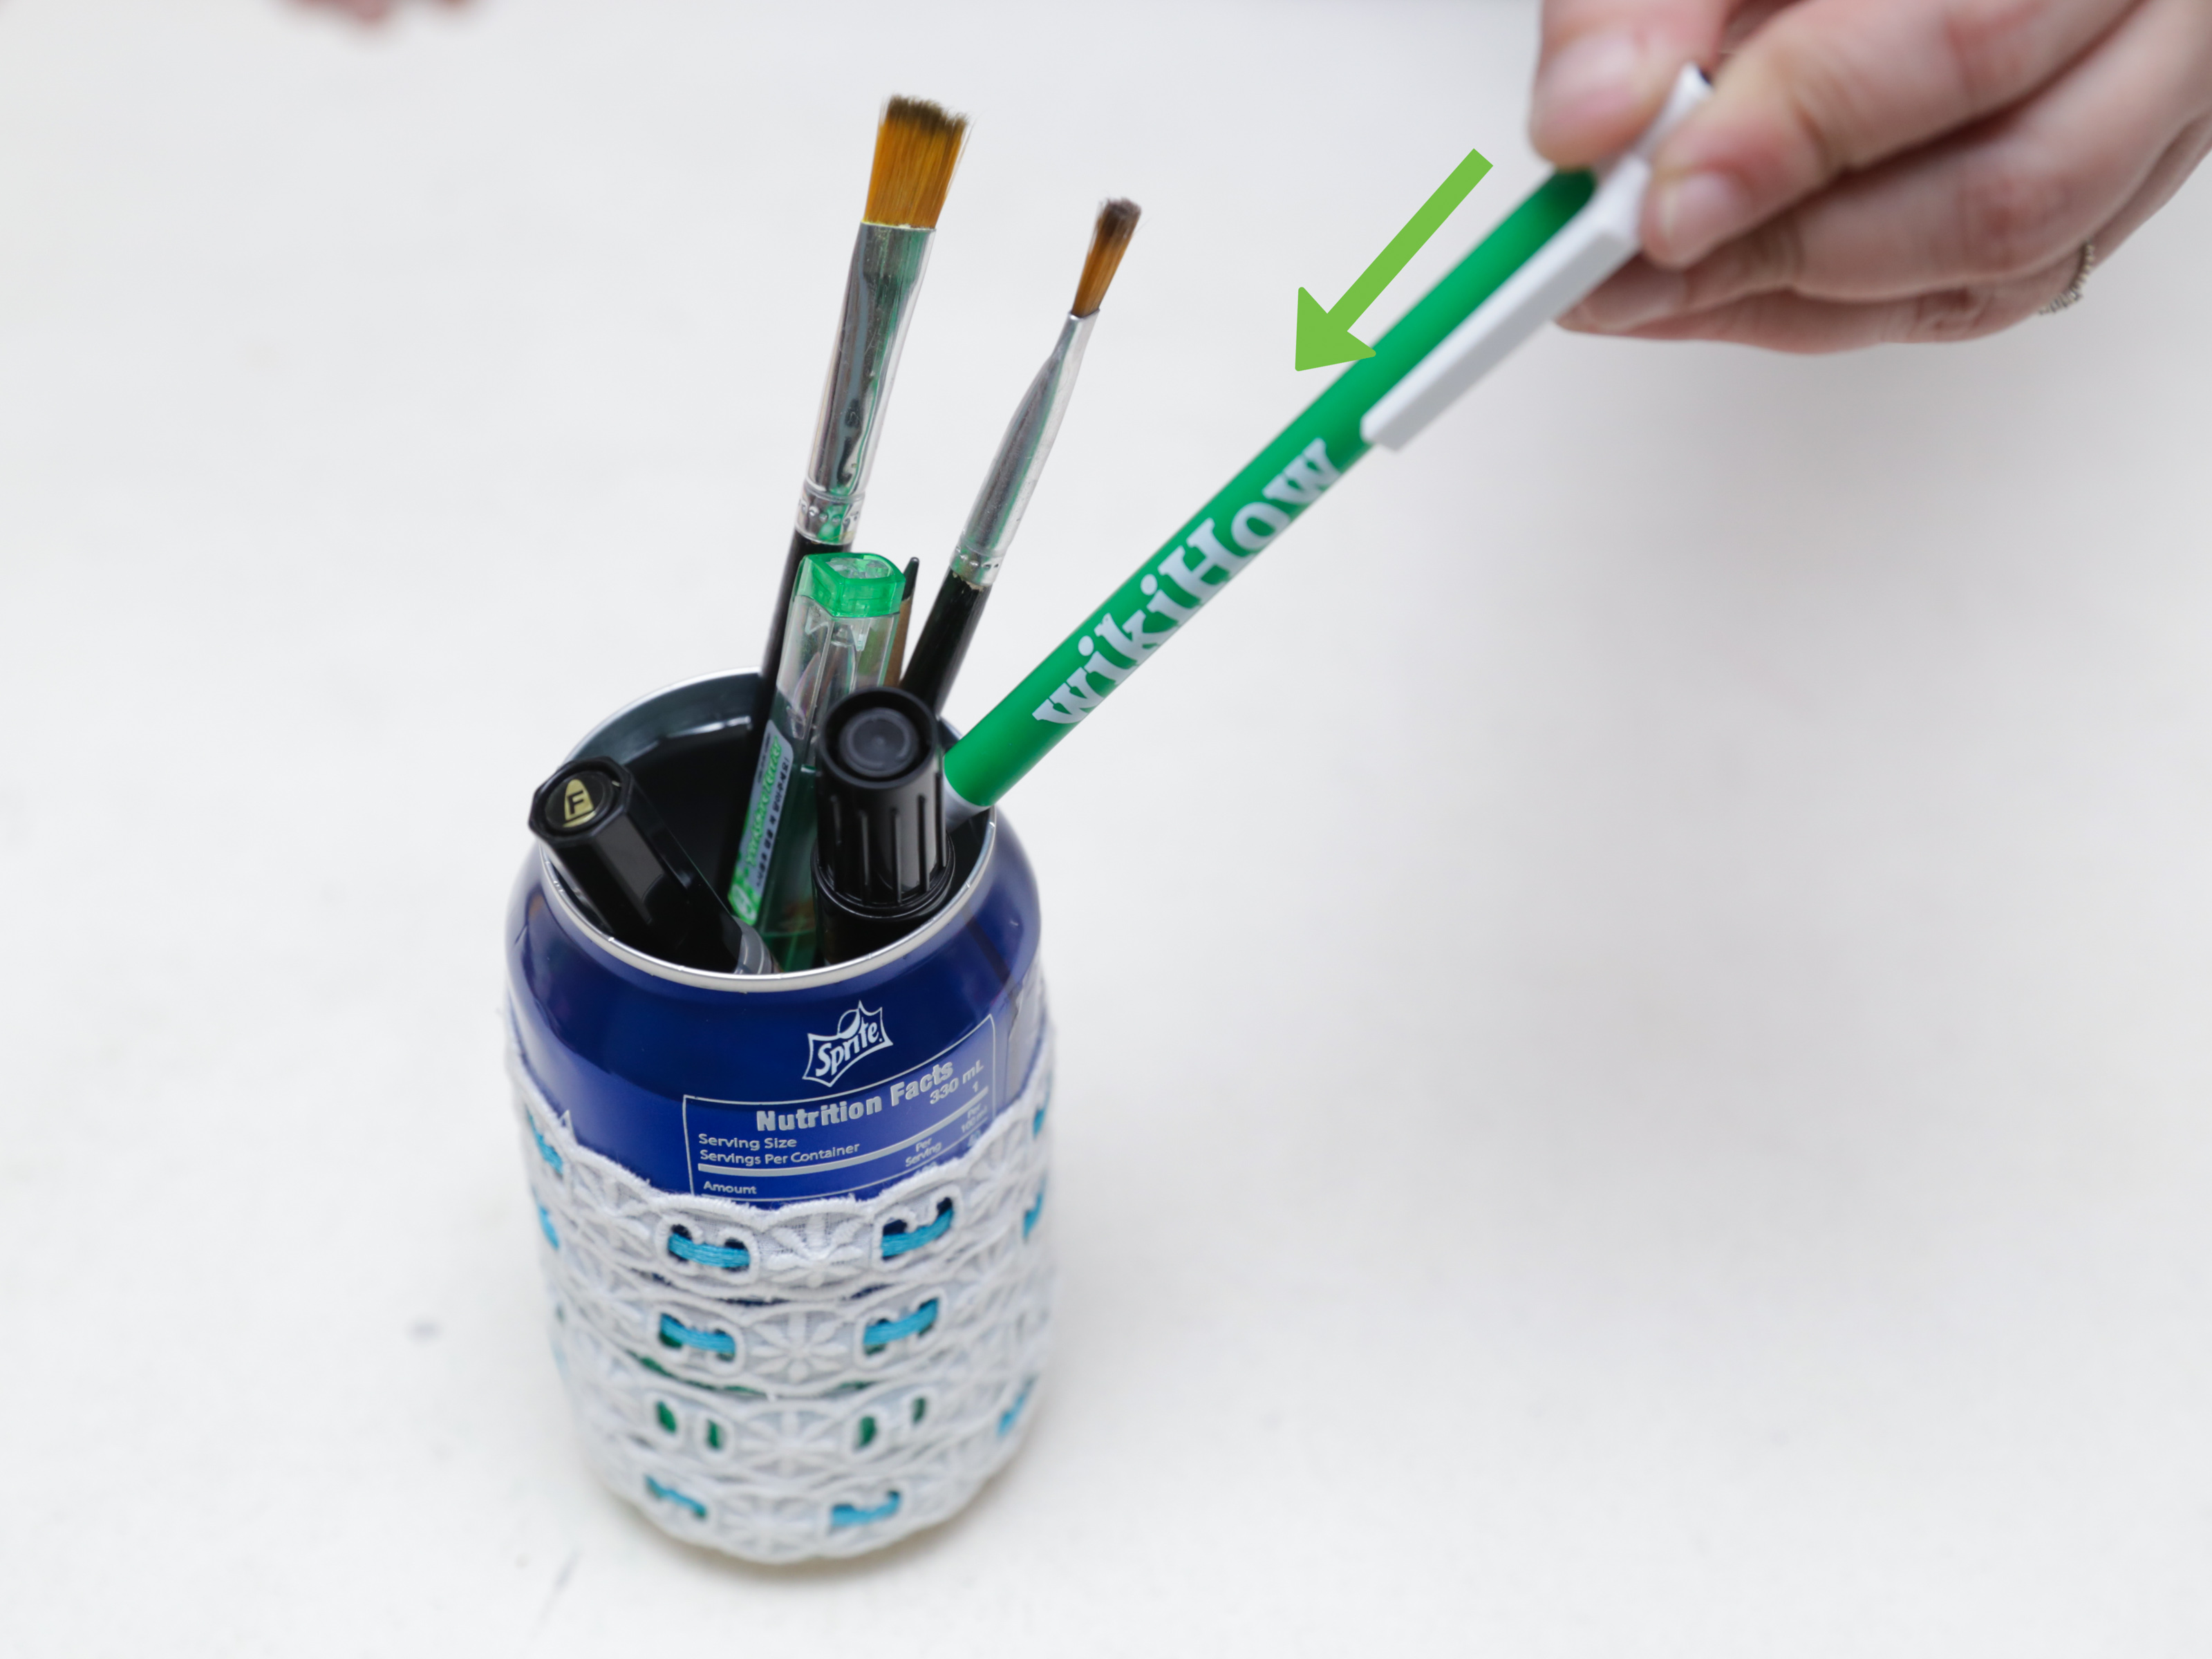 Homemade Pencil Holders 3 Ways To Make A Pencil Holder From A Can Wikihow